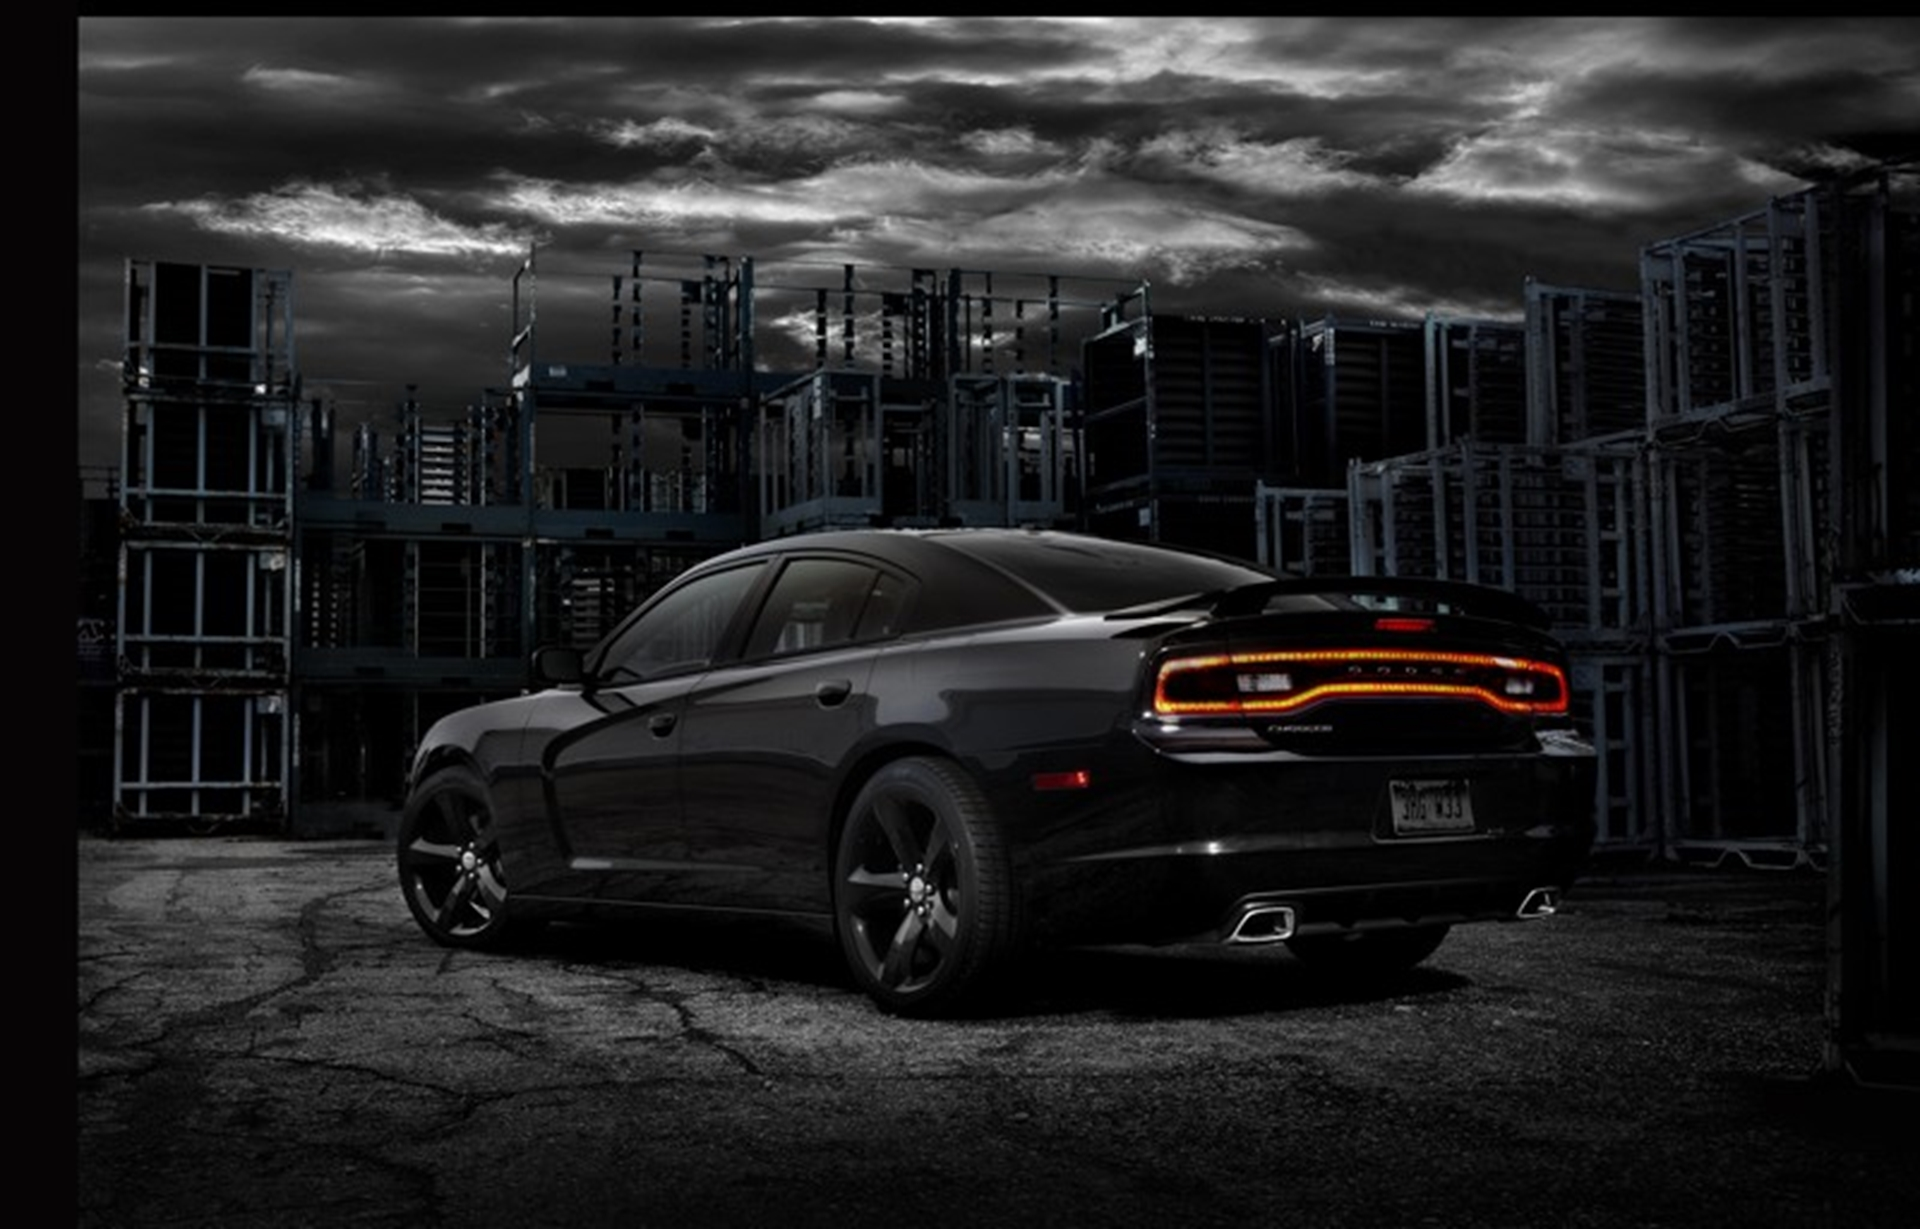 2012 Dodge Charger rear